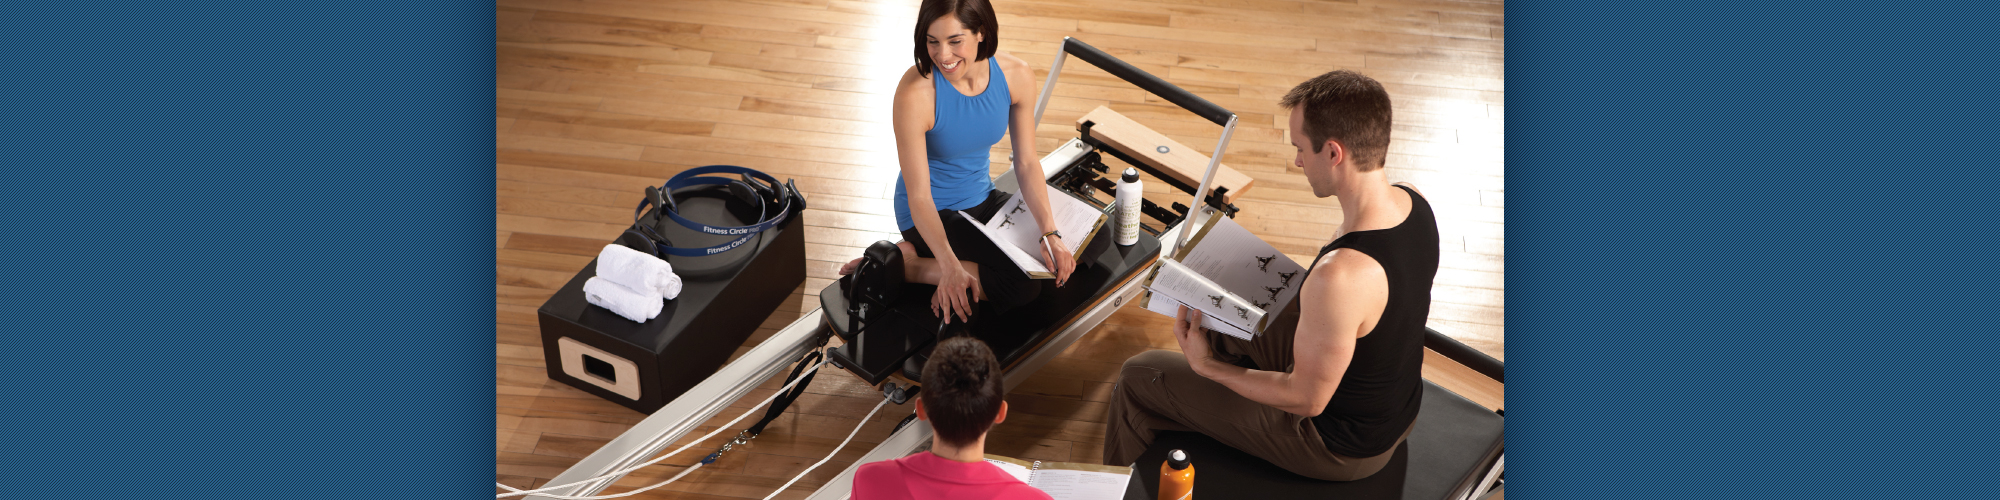 Intermountain Pilates Training Center Utah Stott Pilates